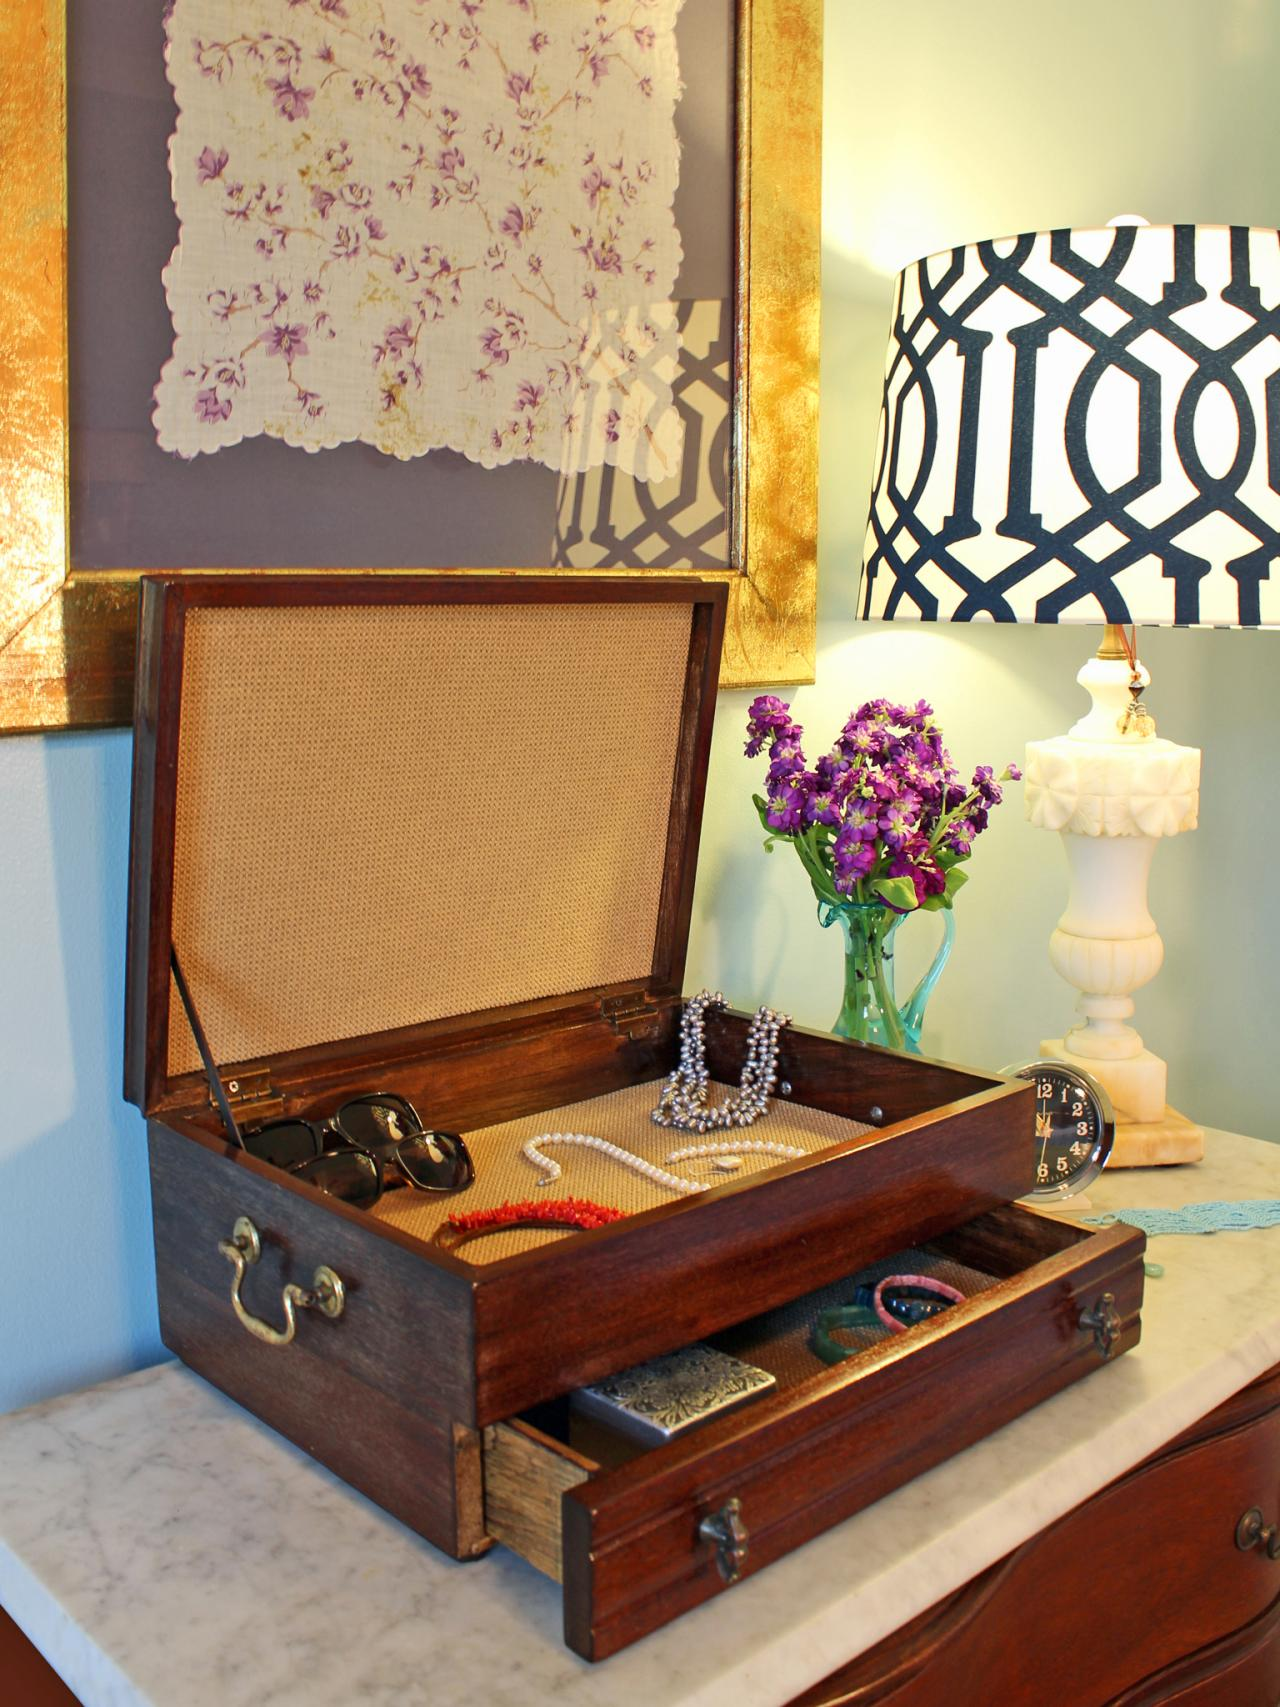 Upcycle An Old Cutlery Box Into A New Jewelry Box Hgtv